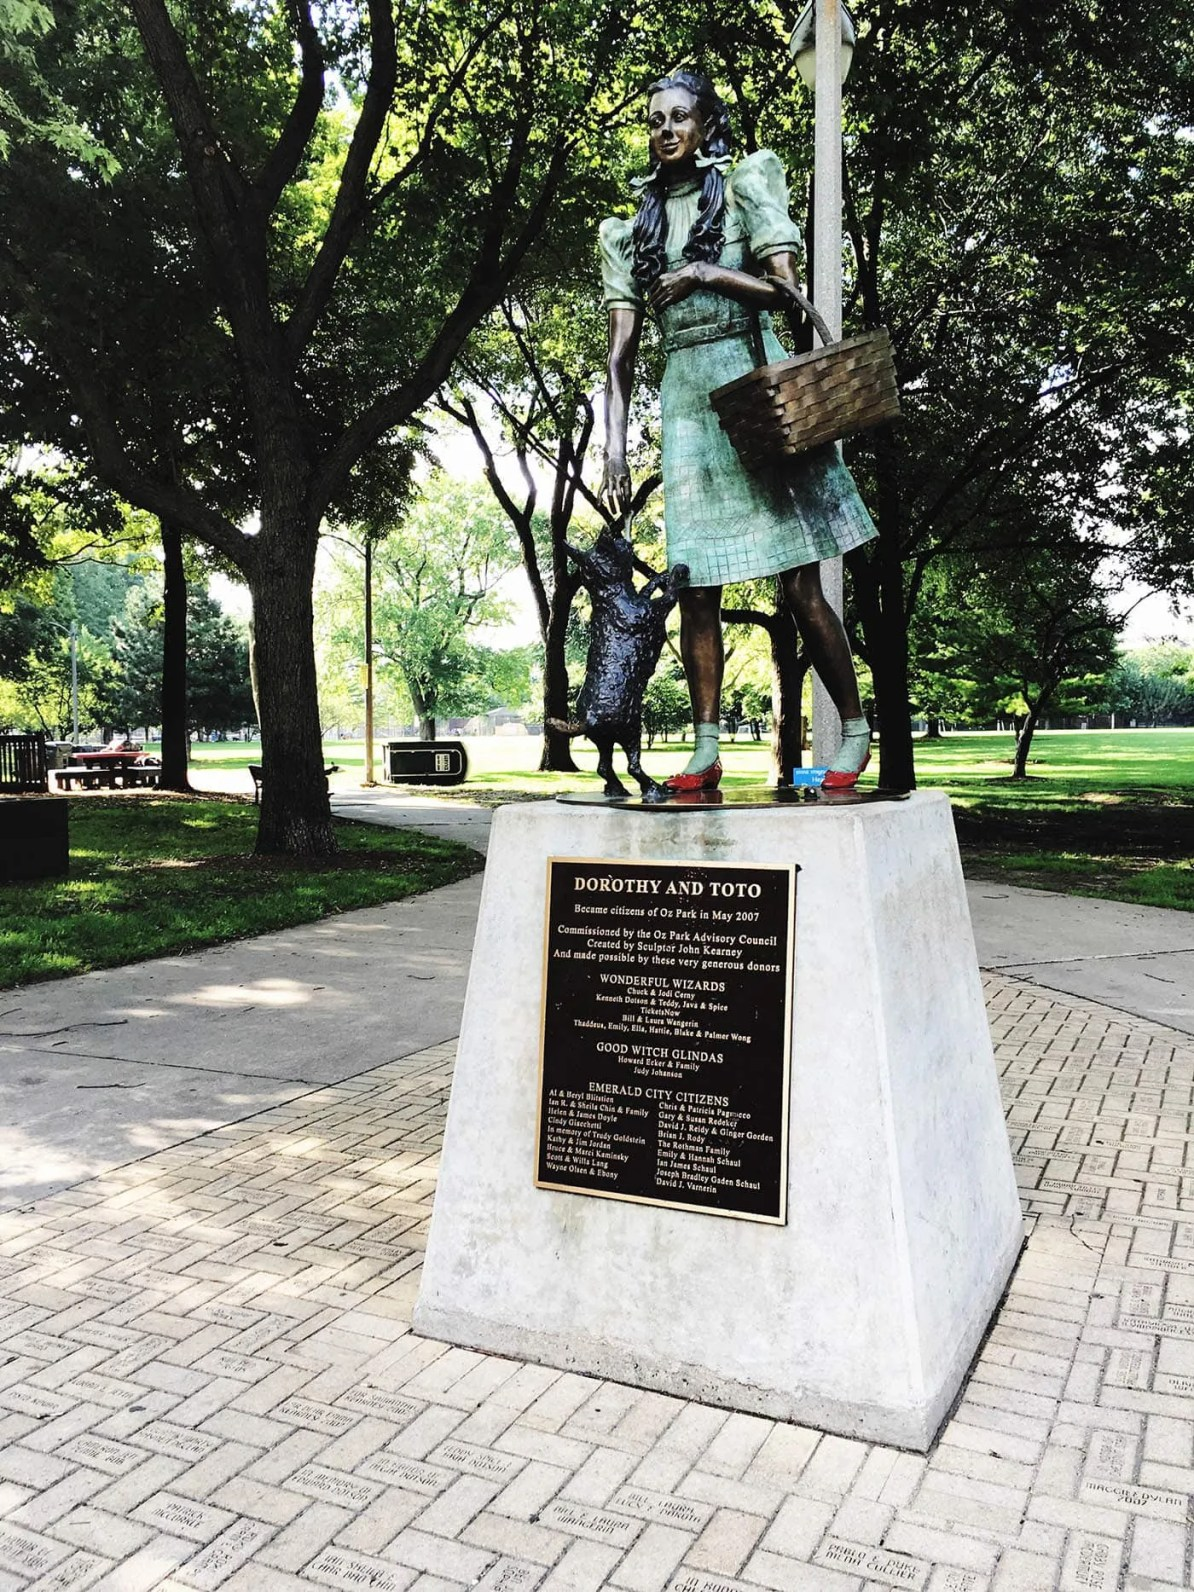 Dorothy and Toto  statue at Oz Park in Chicago, Illinois - a Wizard of Oz themed Park.